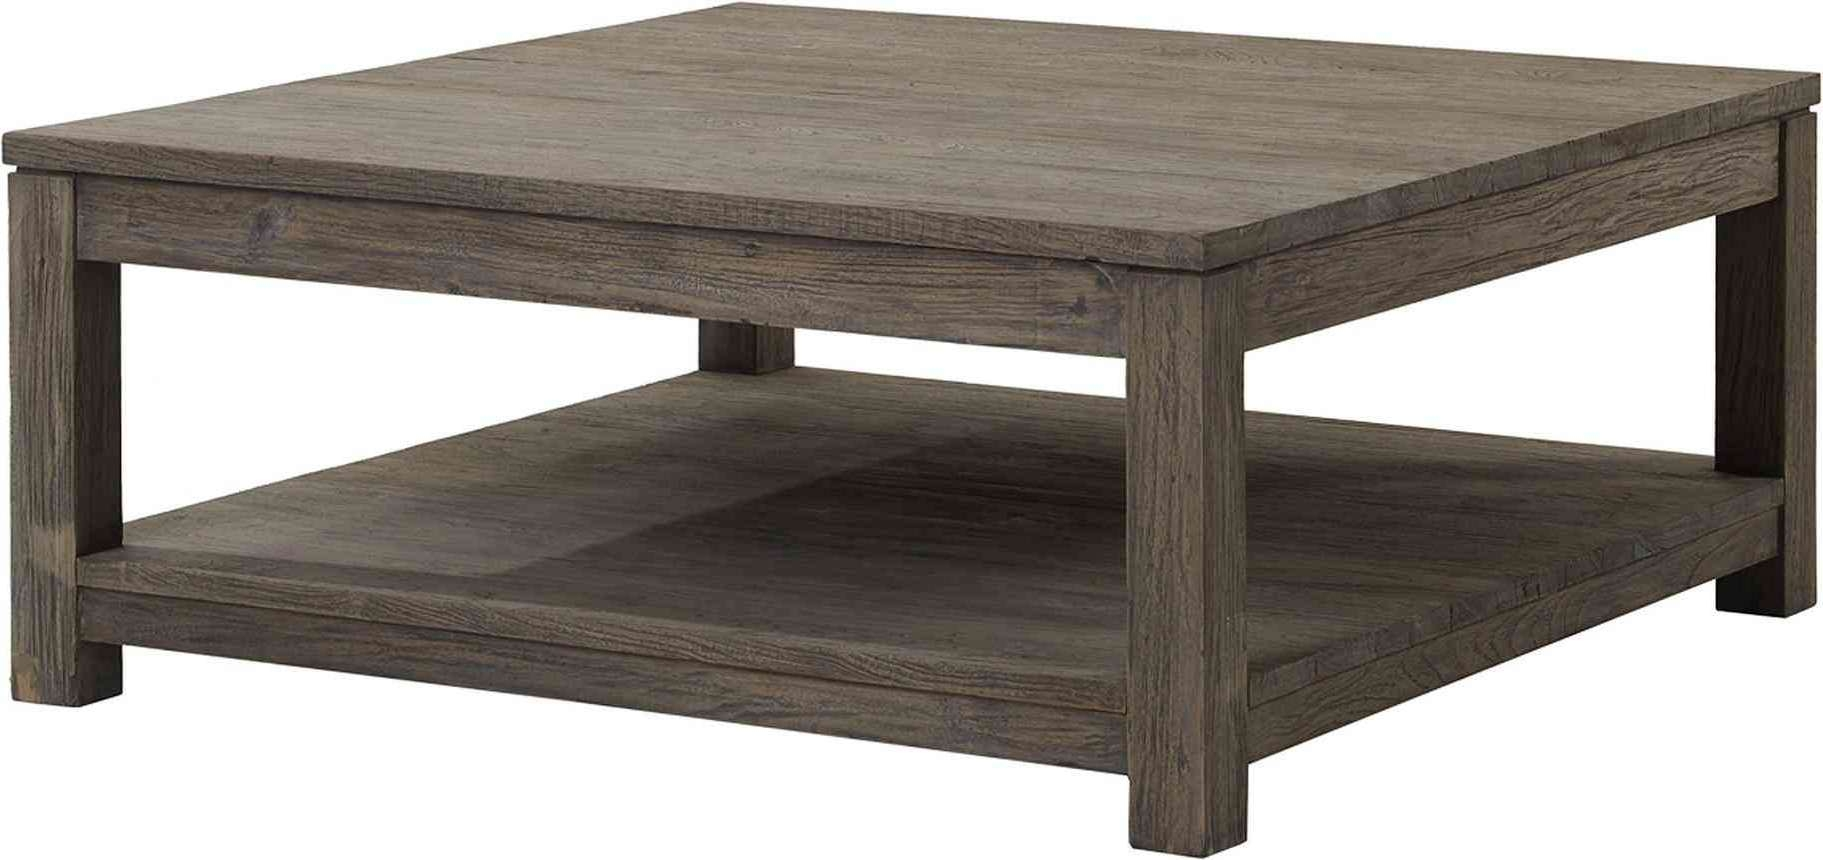 Most Up To Date Large Square Coffee Tables Within Coffee Tables : Square Coffee Tables Living Room Table Cheap For (View 3 of 20)